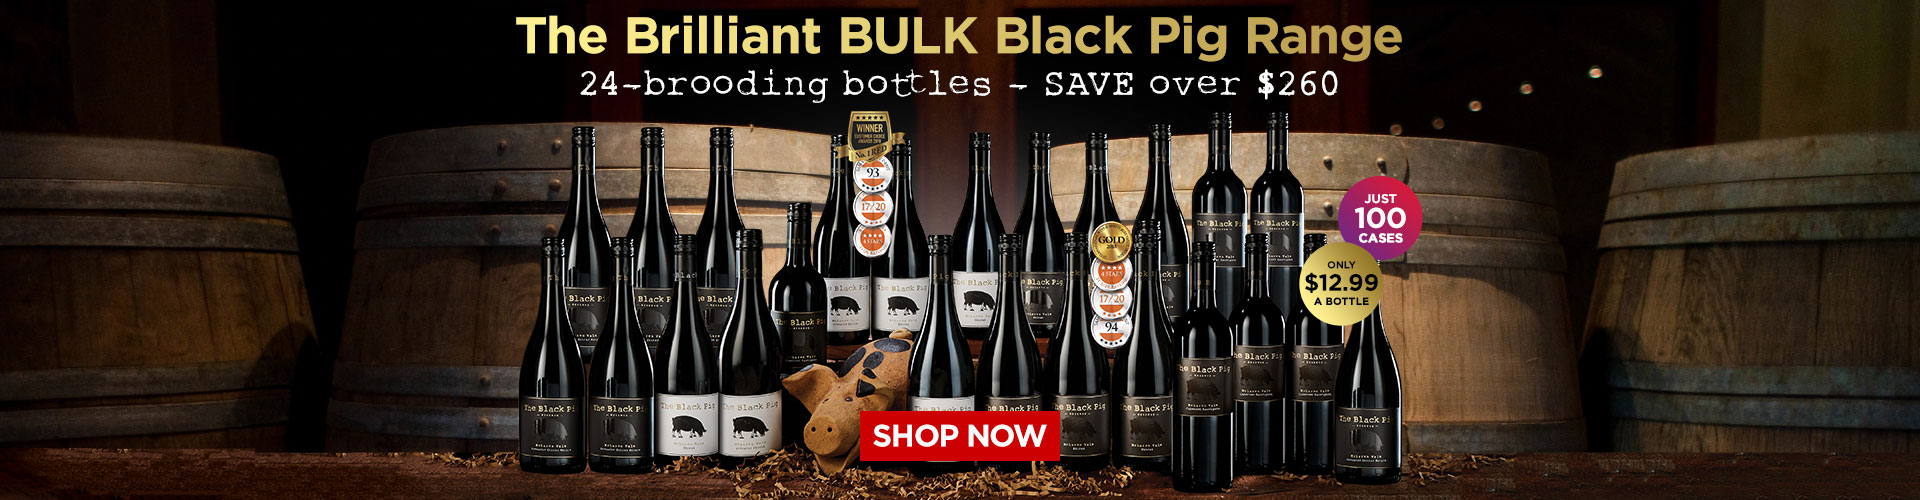 The Brilliant Bulk Black Pig Range - only $12.99 a bottle! SHOP NOW